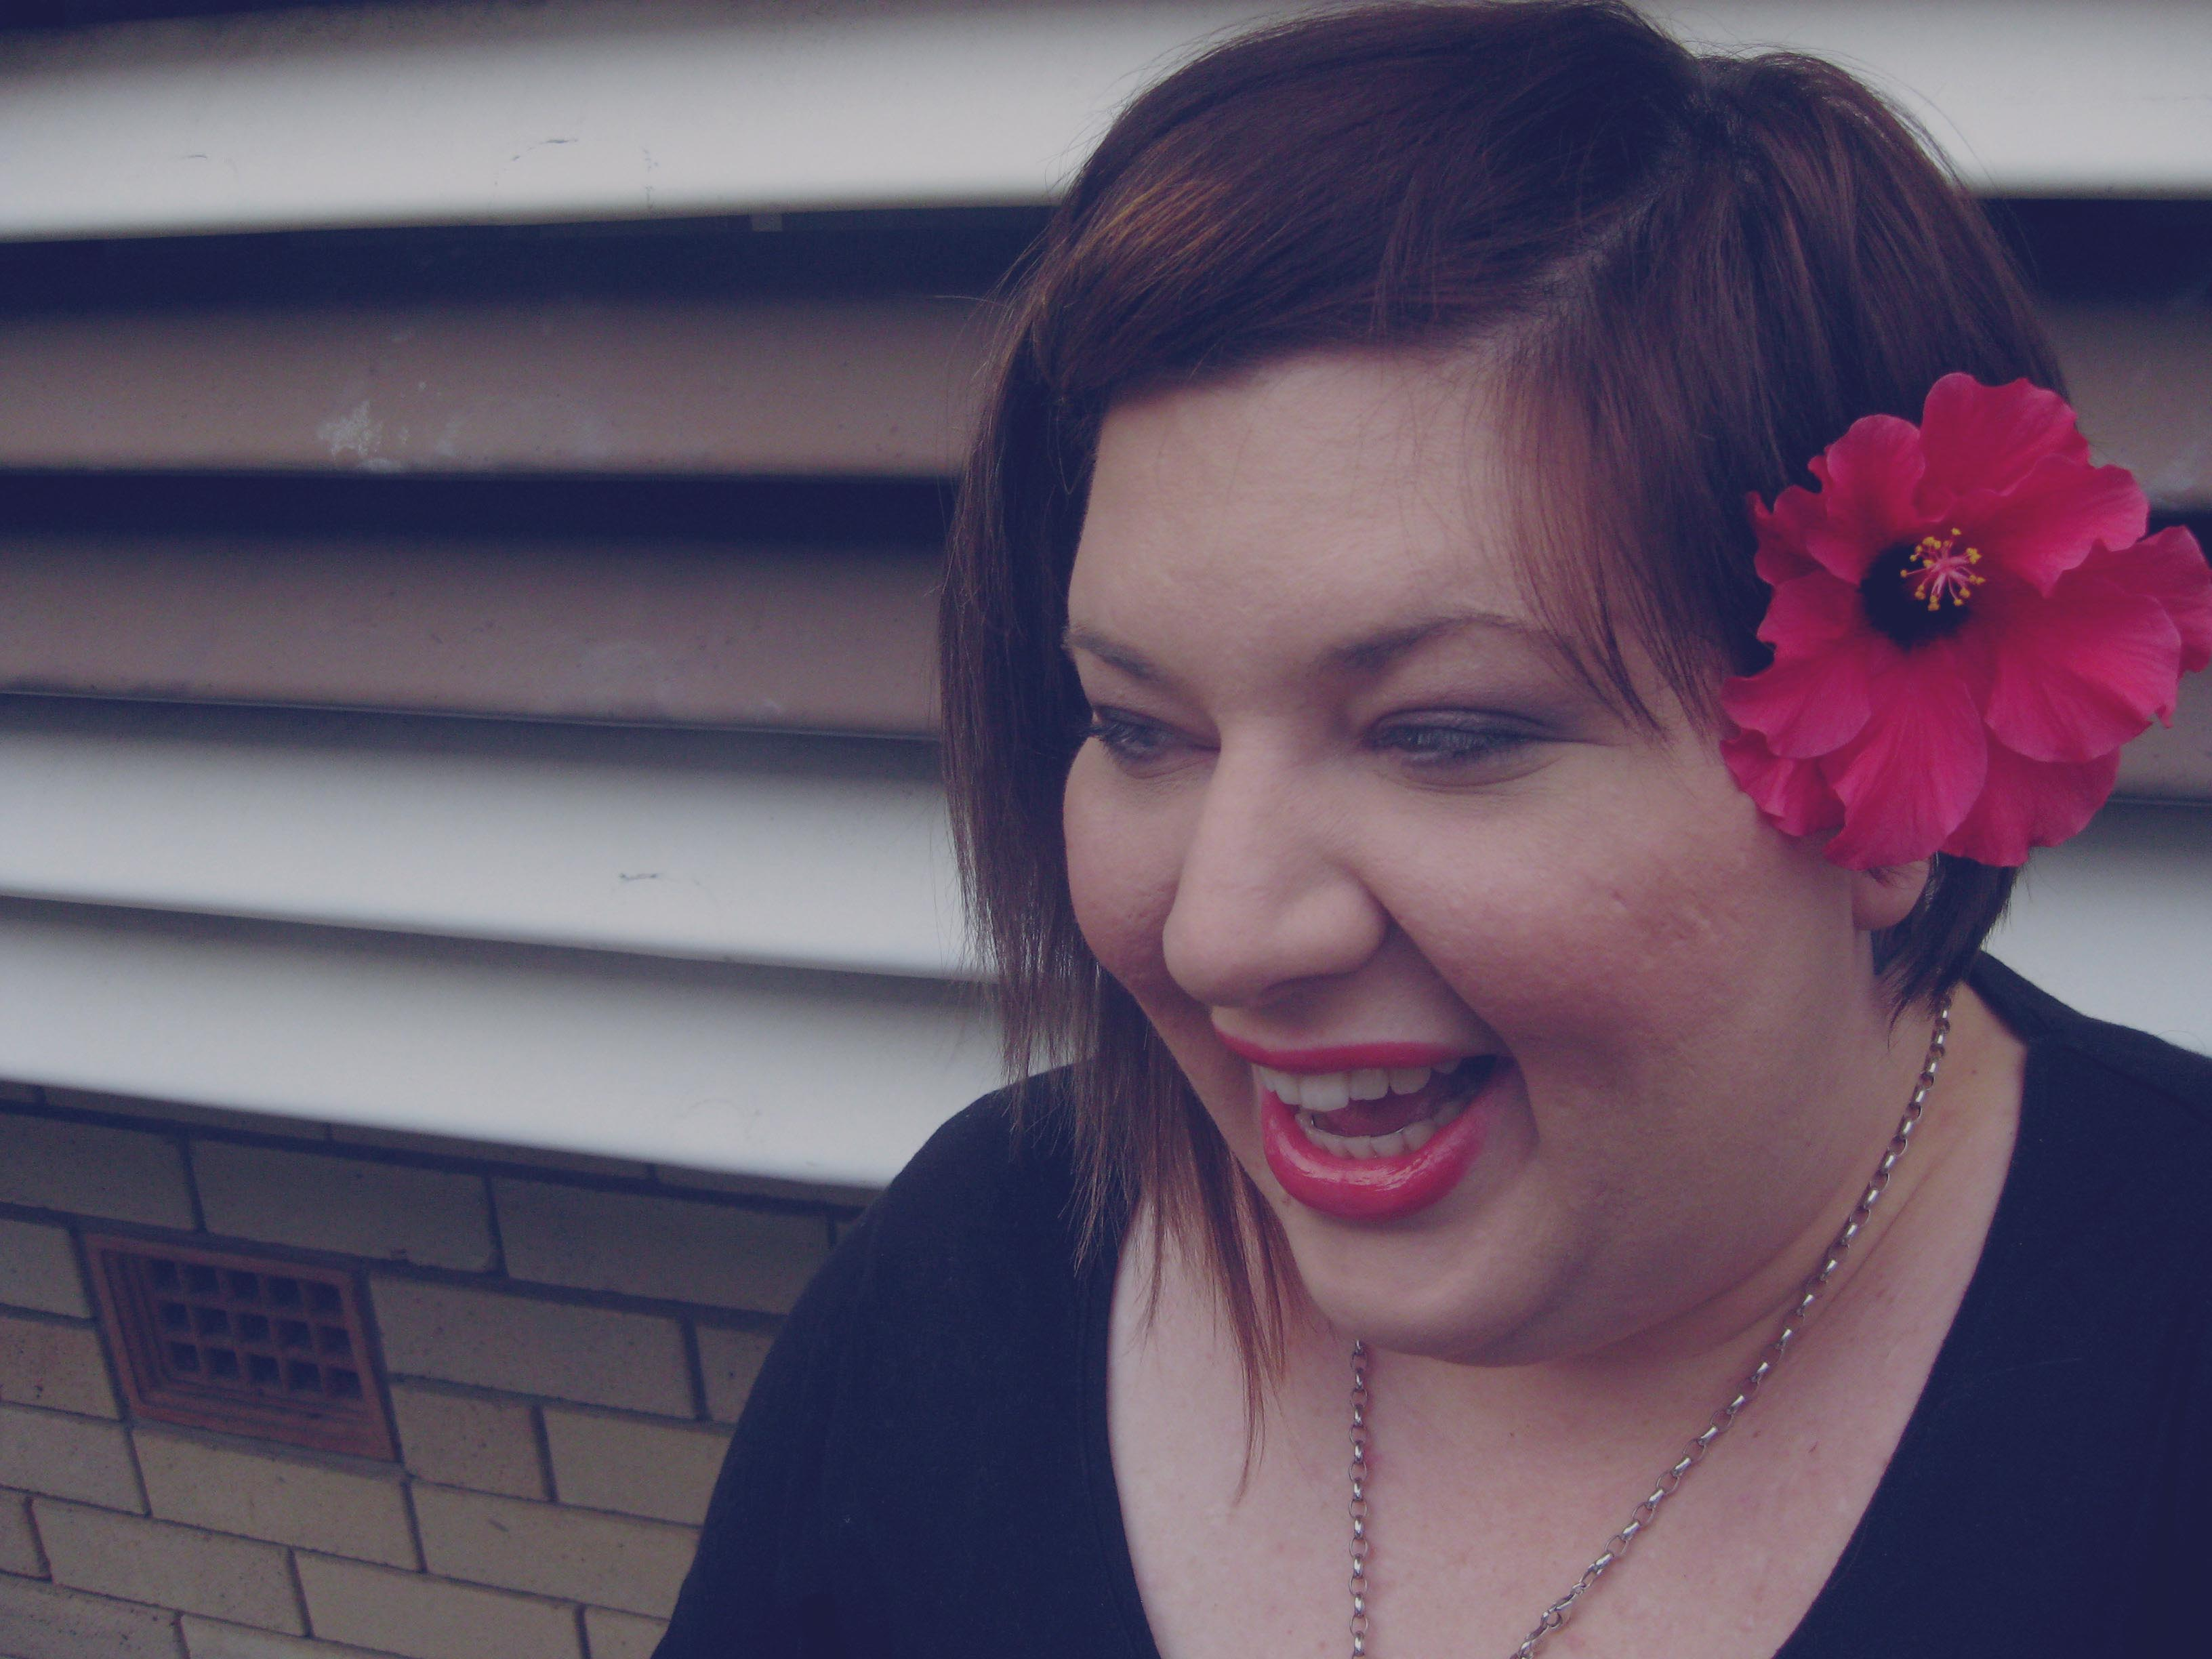 Photo of me laughing with a red hibiscus tucked behind my ear.